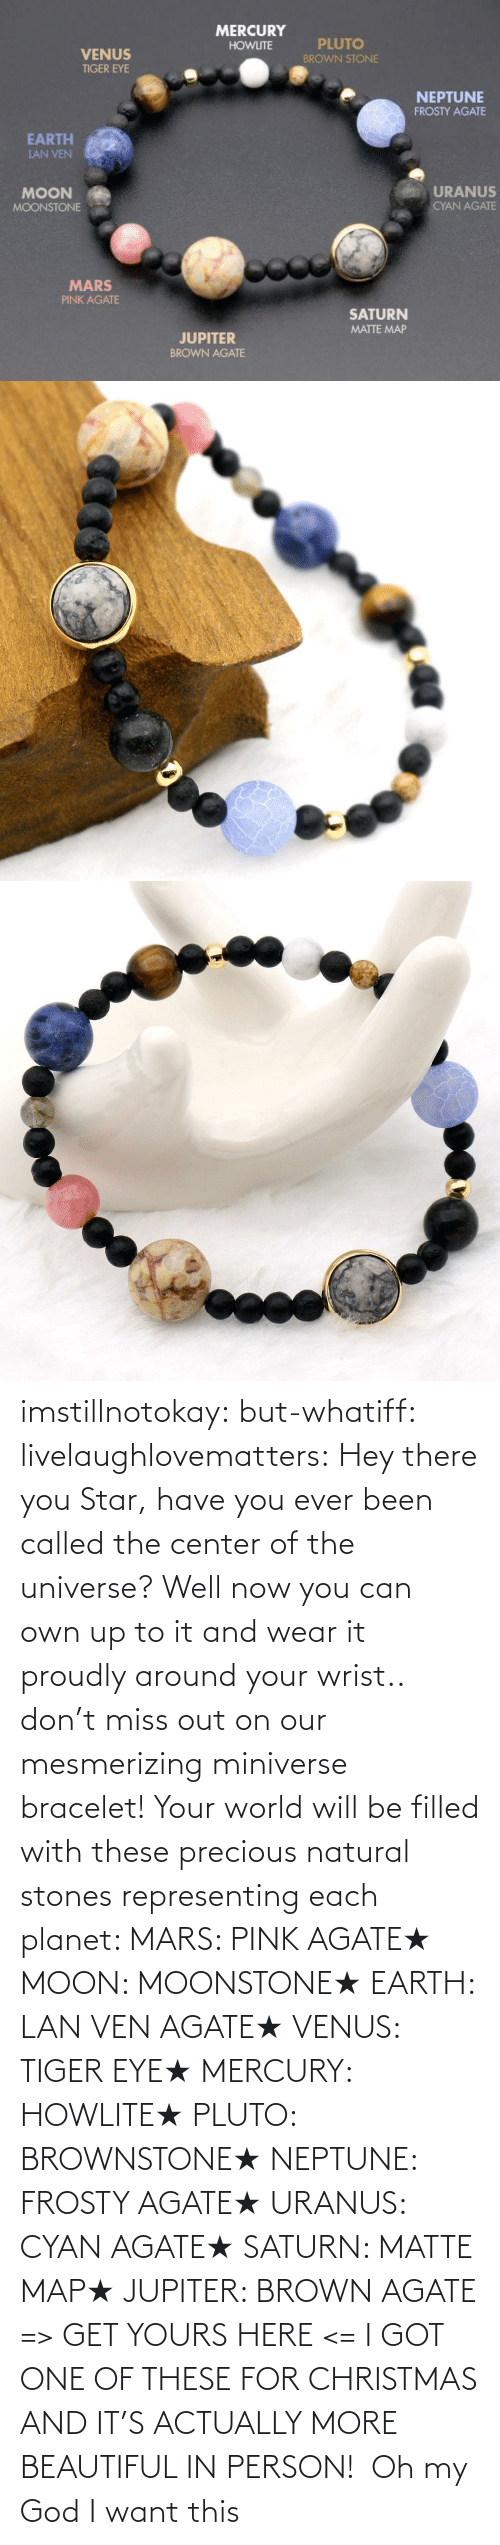 the universe: imstillnotokay: but-whatiff:  livelaughlovematters:  Hey there you Star, have you ever been called the center of the universe? Well now you can own up to it and wear it proudly around your wrist.. don't miss out on our mesmerizing miniverse bracelet! Your world will be filled with these precious natural stones representing each planet:  MARS: PINK AGATE★ MOON: MOONSTONE★ EARTH: LAN VEN AGATE★ VENUS: TIGER EYE★ MERCURY: HOWLITE★ PLUTO: BROWNSTONE★ NEPTUNE: FROSTY AGATE★ URANUS: CYAN AGATE★ SATURN: MATTE MAP★ JUPITER: BROWN AGATE => GET YOURS HERE <=  I GOT ONE OF THESE FOR CHRISTMAS AND IT'S ACTUALLY MORE BEAUTIFUL IN PERSON!     Oh my God I want this